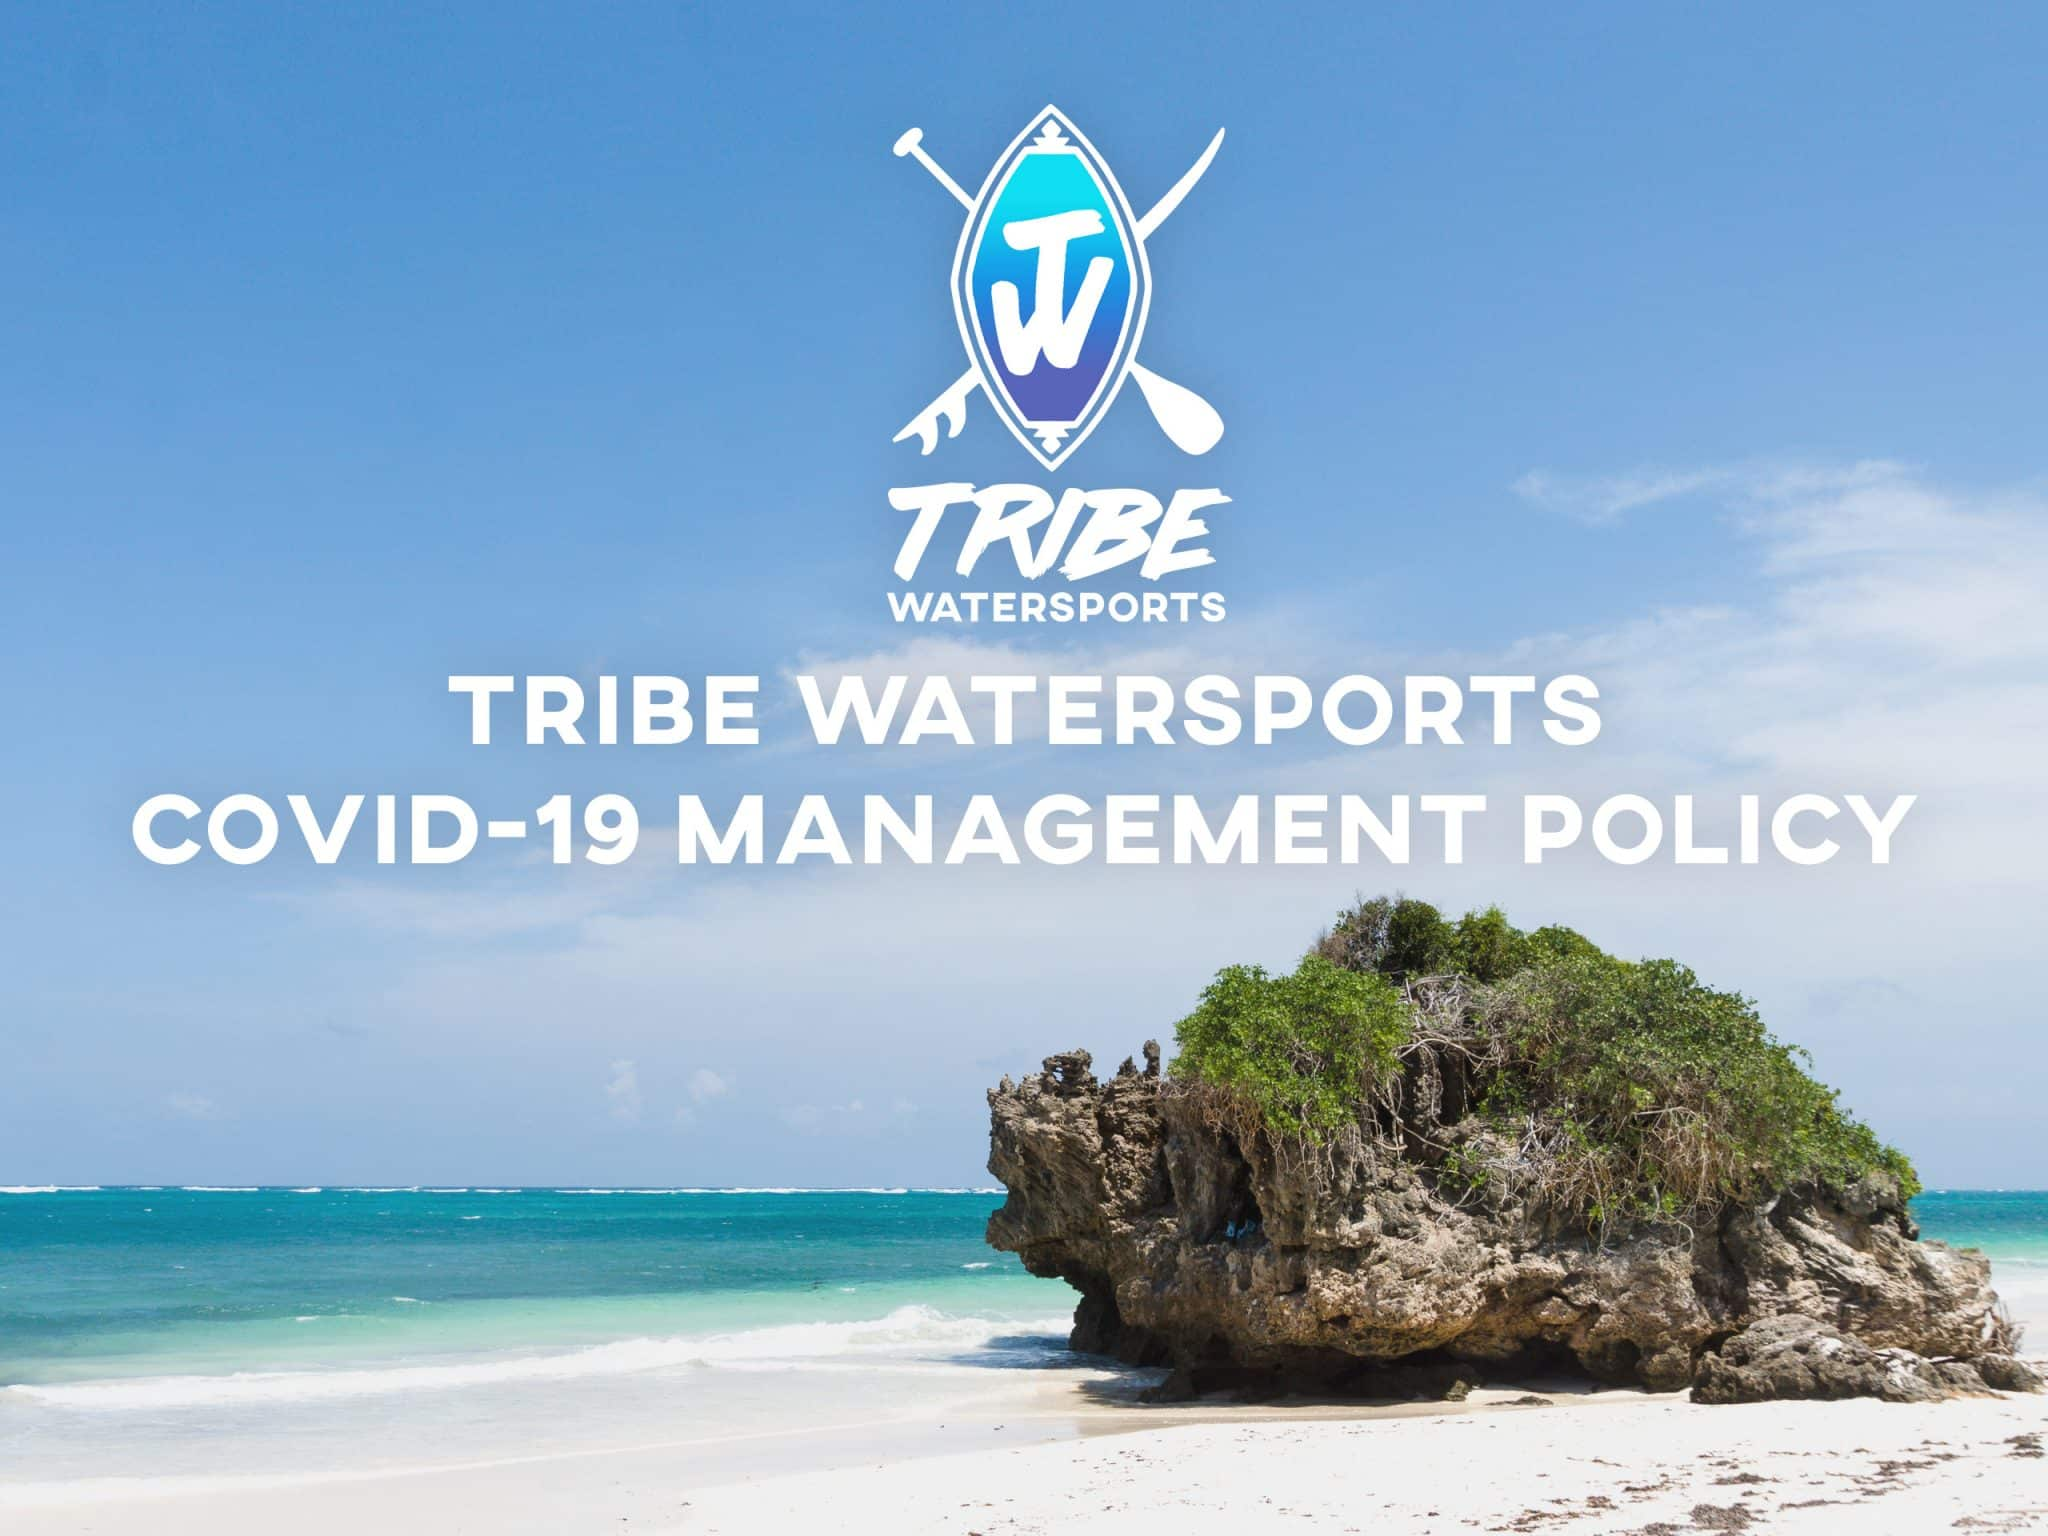 Tribe Watersports - Watamu Kenya - Kitesurfing - Wakeboarding - Stand Up Paddleboarding - Tribe Watersports Covid-19 Management policy - covid 19